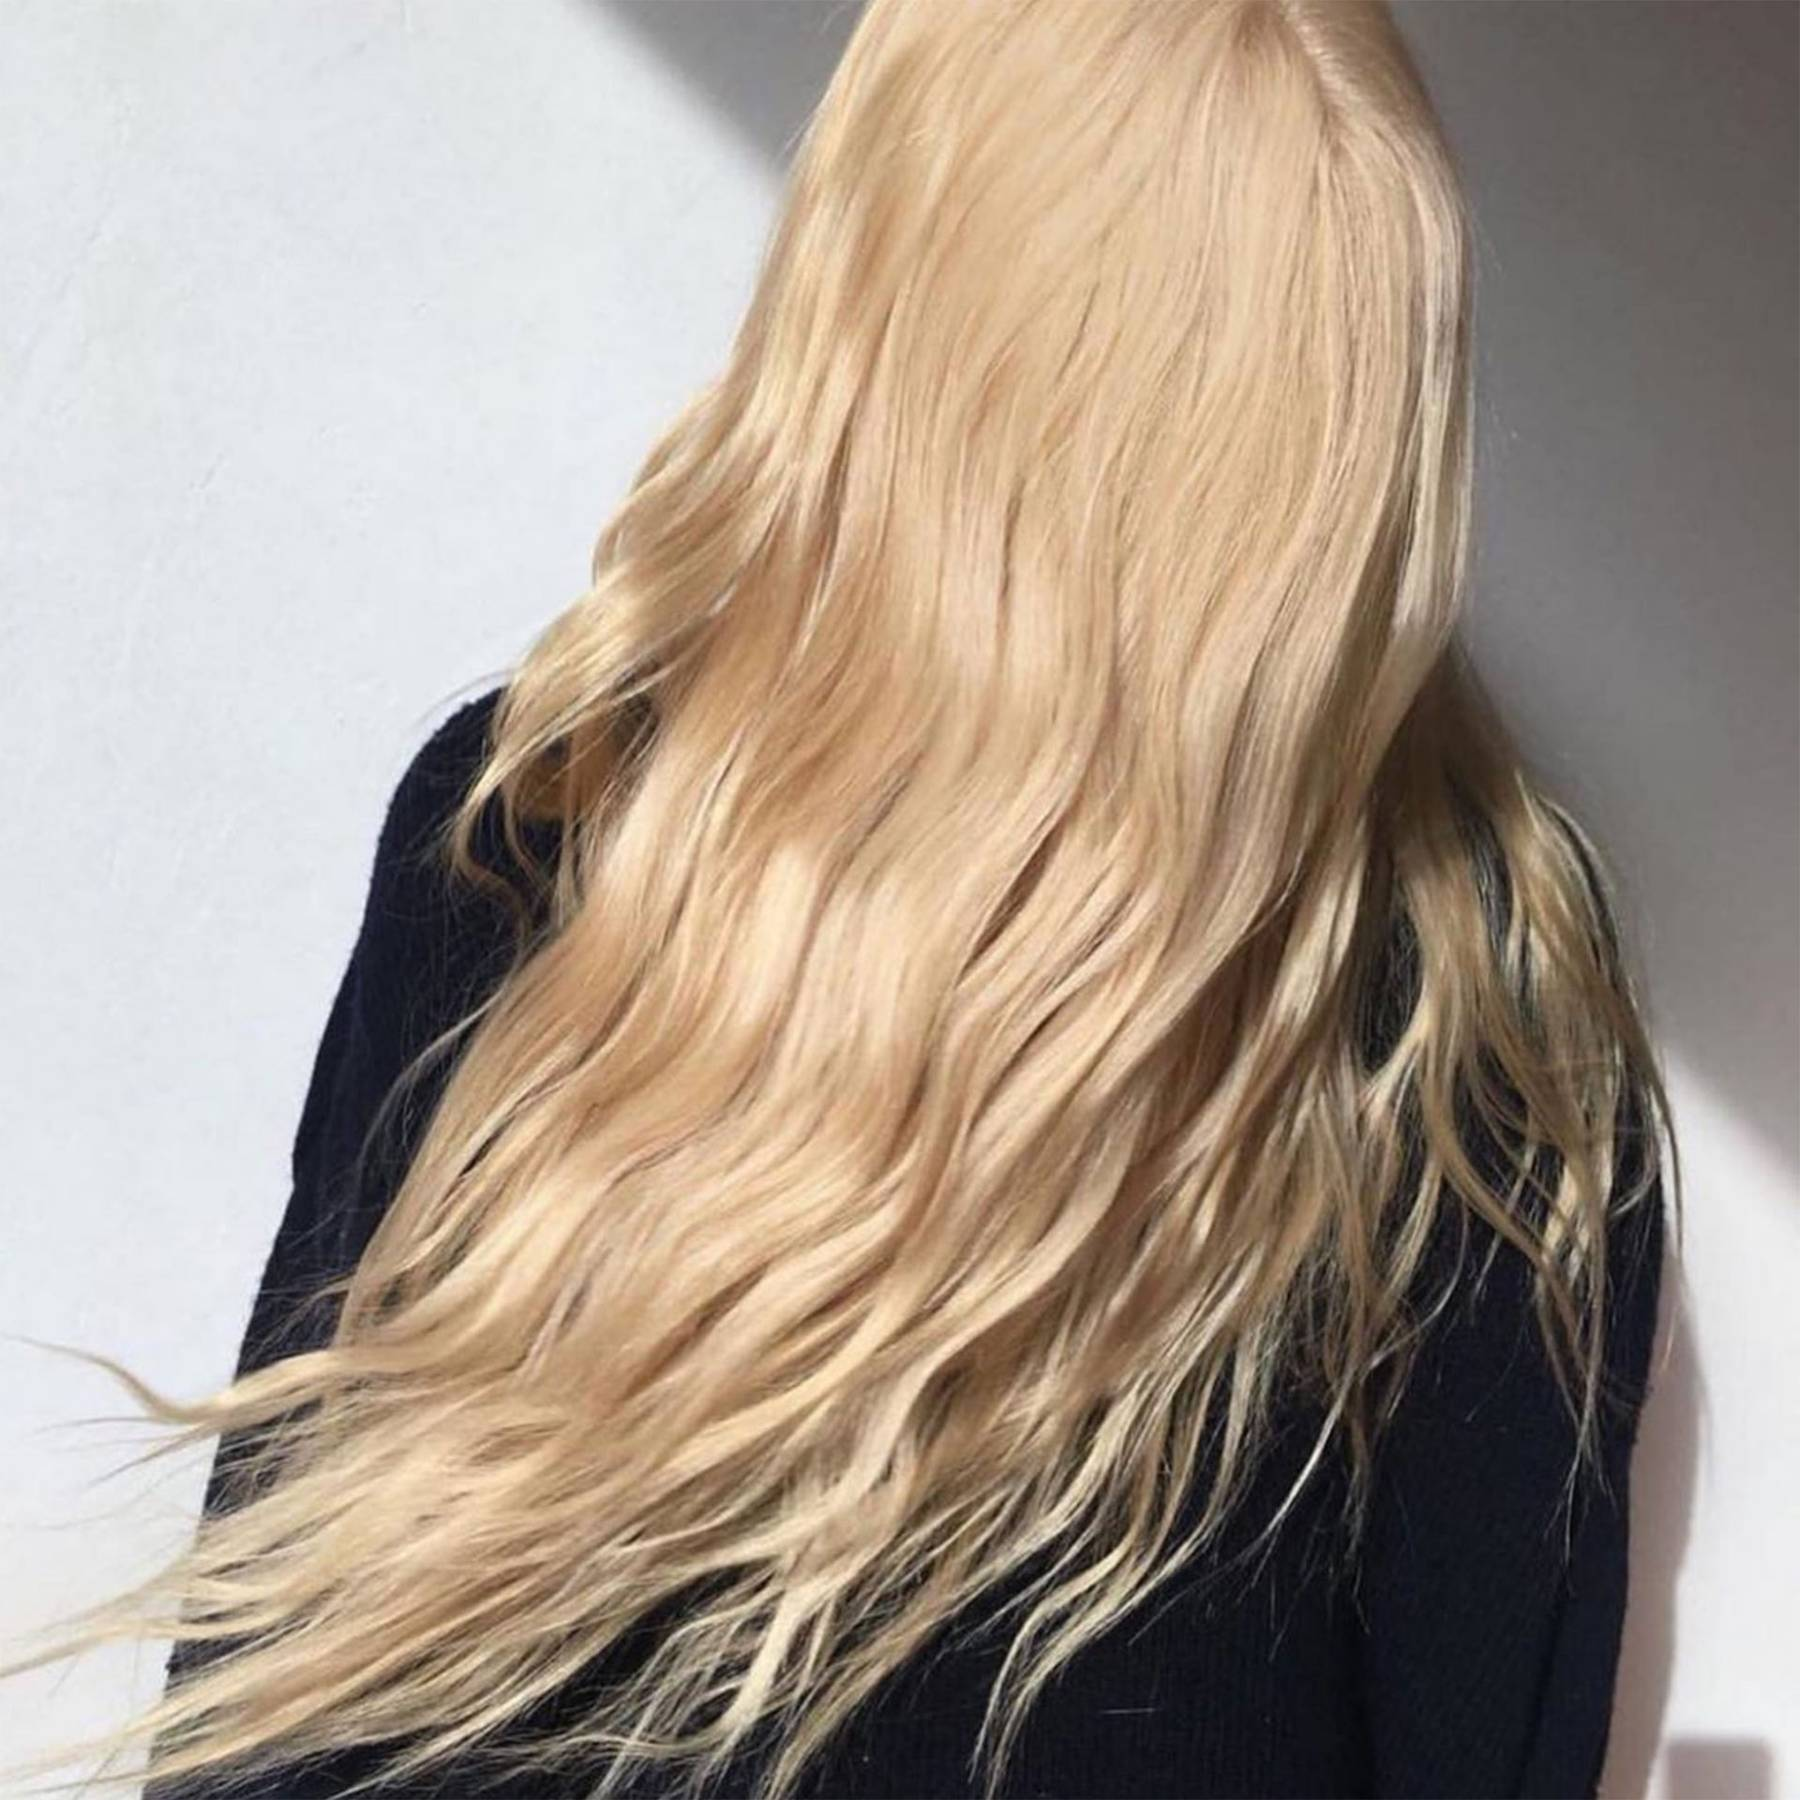 Over bleached hair breaking off